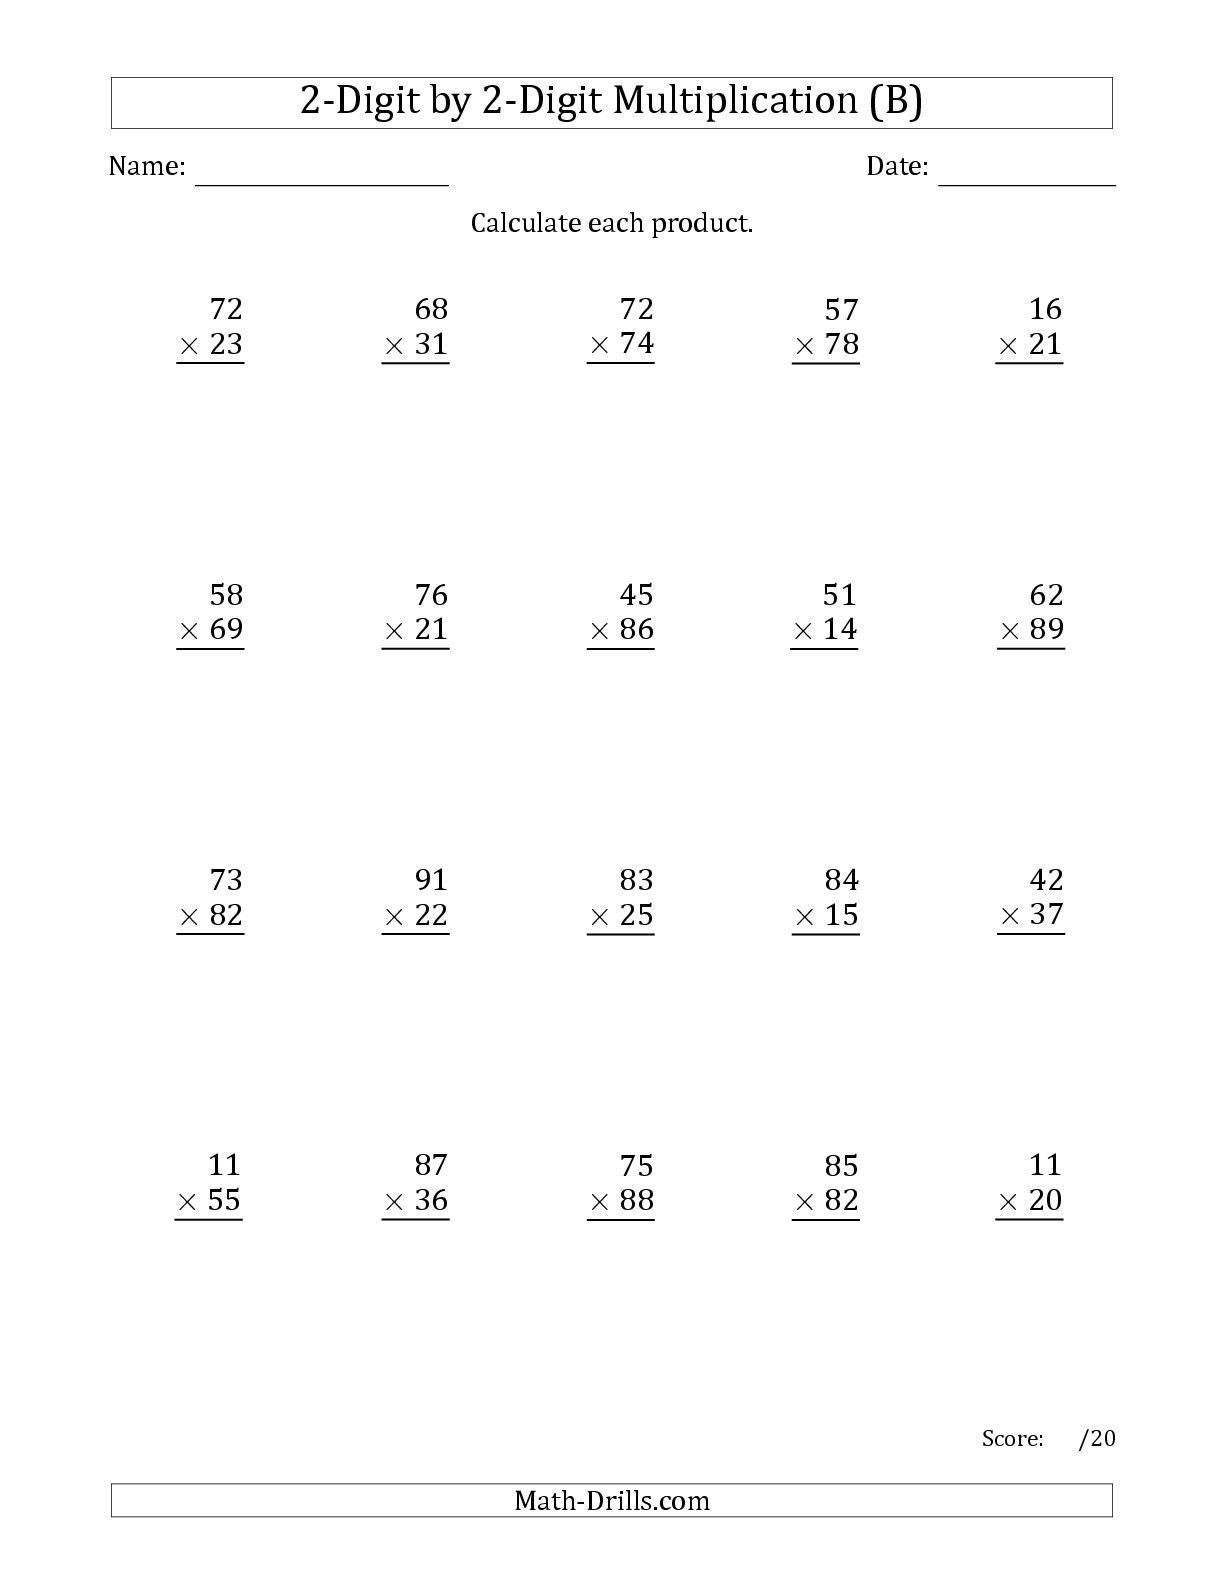 The Multiplying Digit By Digit Numbers B Math Worksheet From  The Multiplying Digit By Digit Numbers B Math Worksheet From The Long Multiplication  Worksheets Page At Mathdrillscom